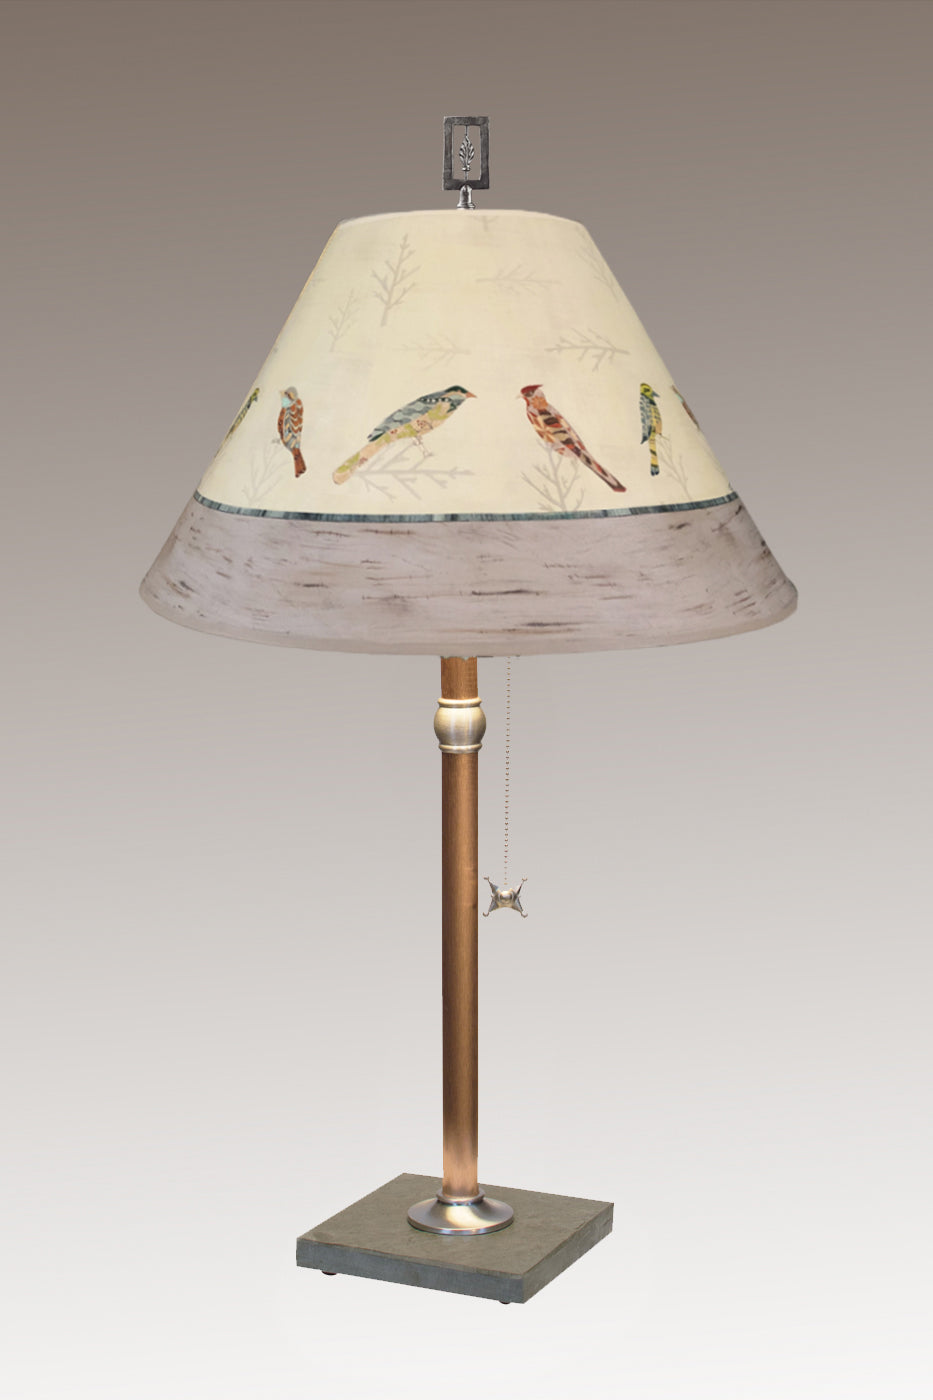 Copper Table Lamp on Vermont Slate with Medium Conical Shade in Bird Friends